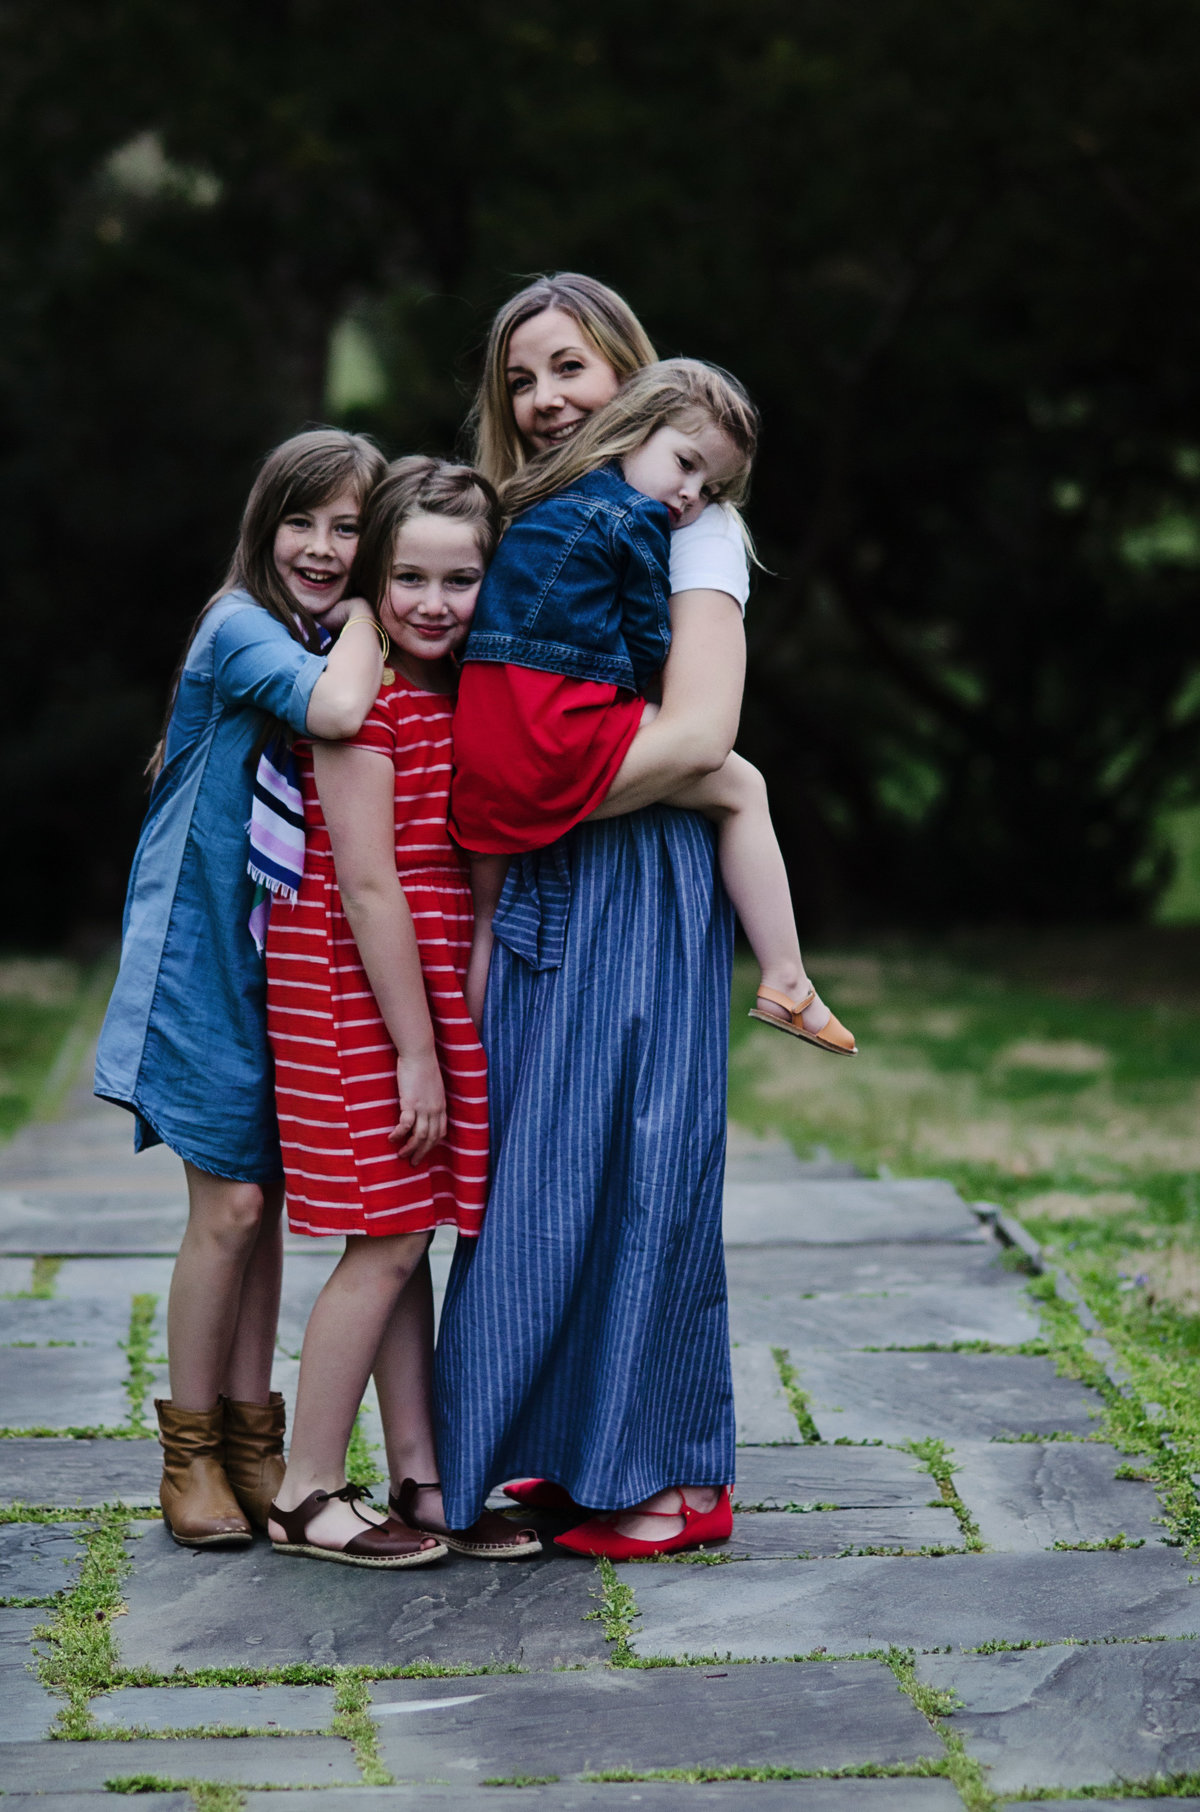 Portrait of a Mom and her three daughters hugging at Glenview Mansion in Rockville, Maryland taken by Sarah Alice Photography